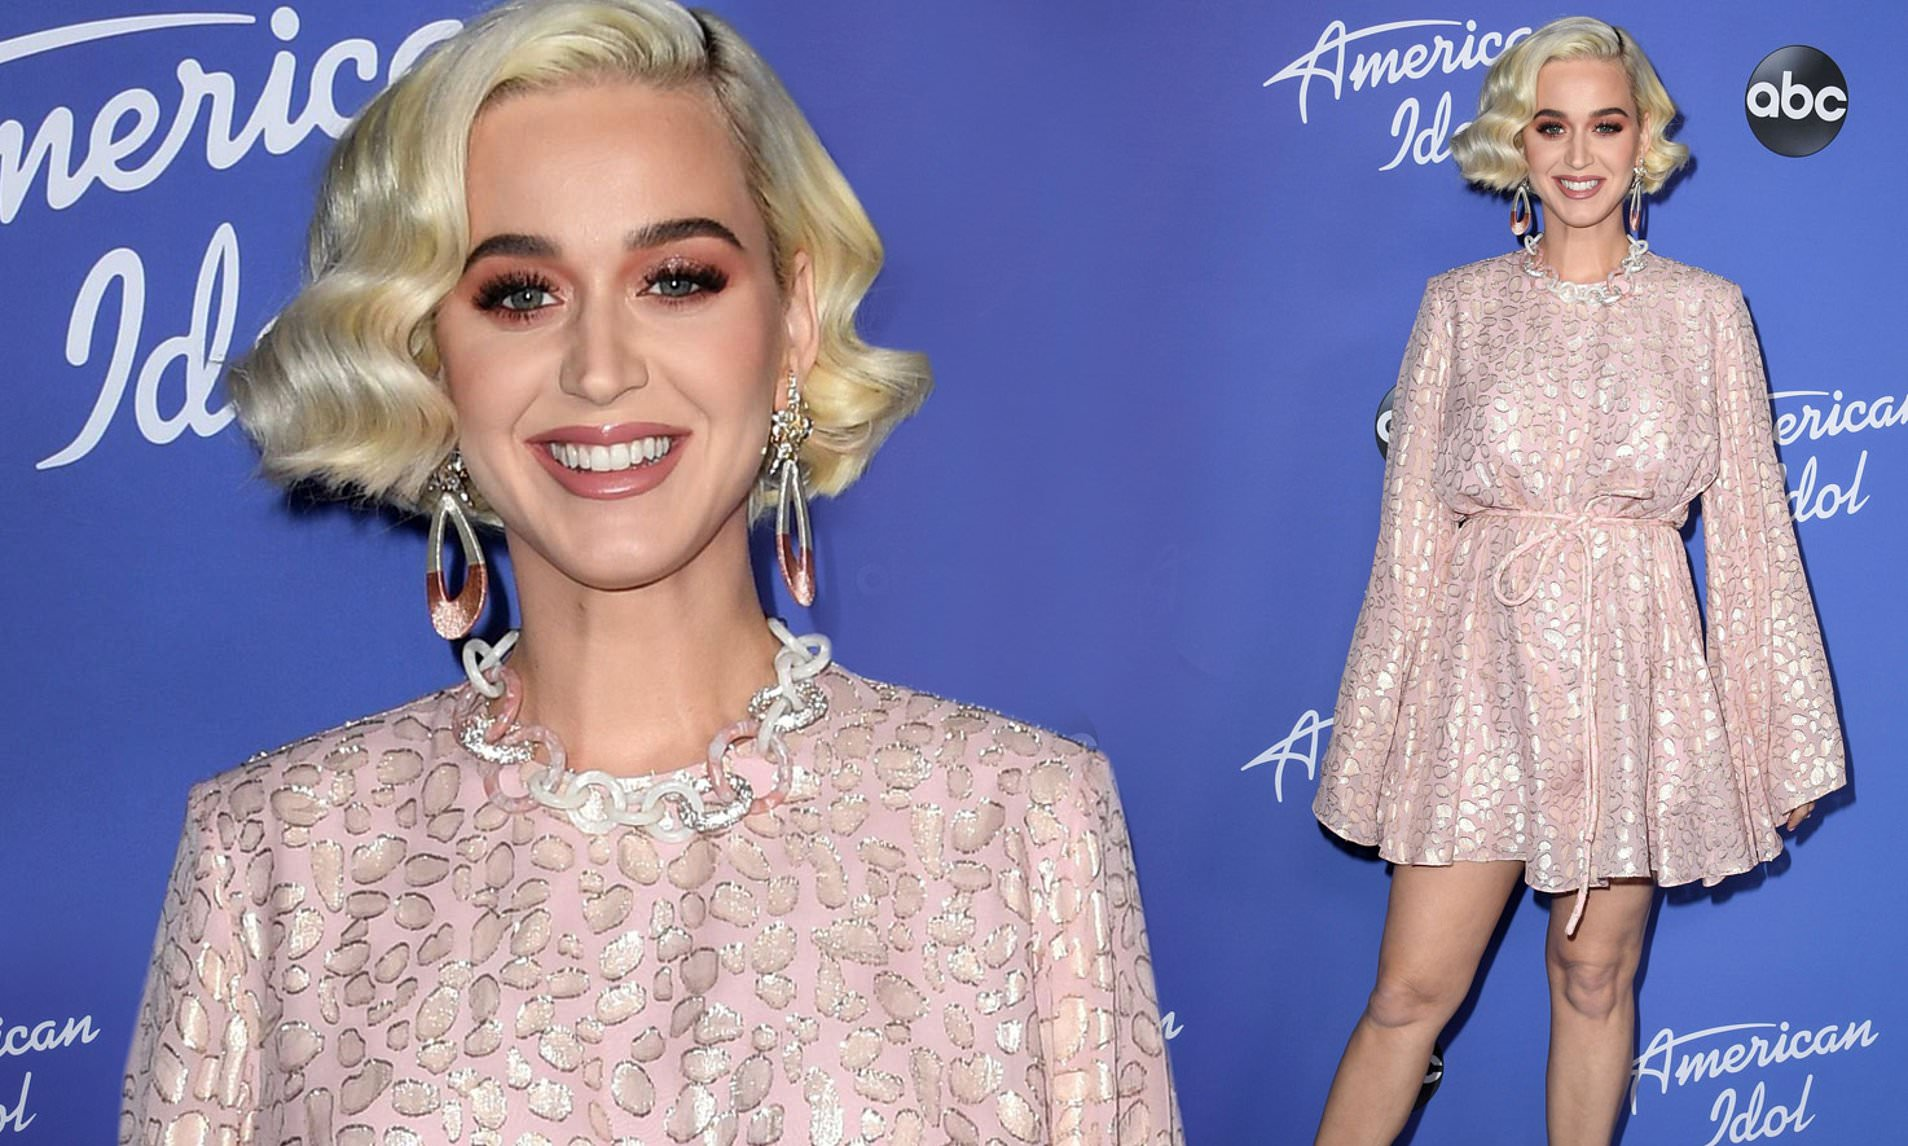 Katy Perry wears Sexiest Pink Dress For 'American Idol' Season 18 Premiere